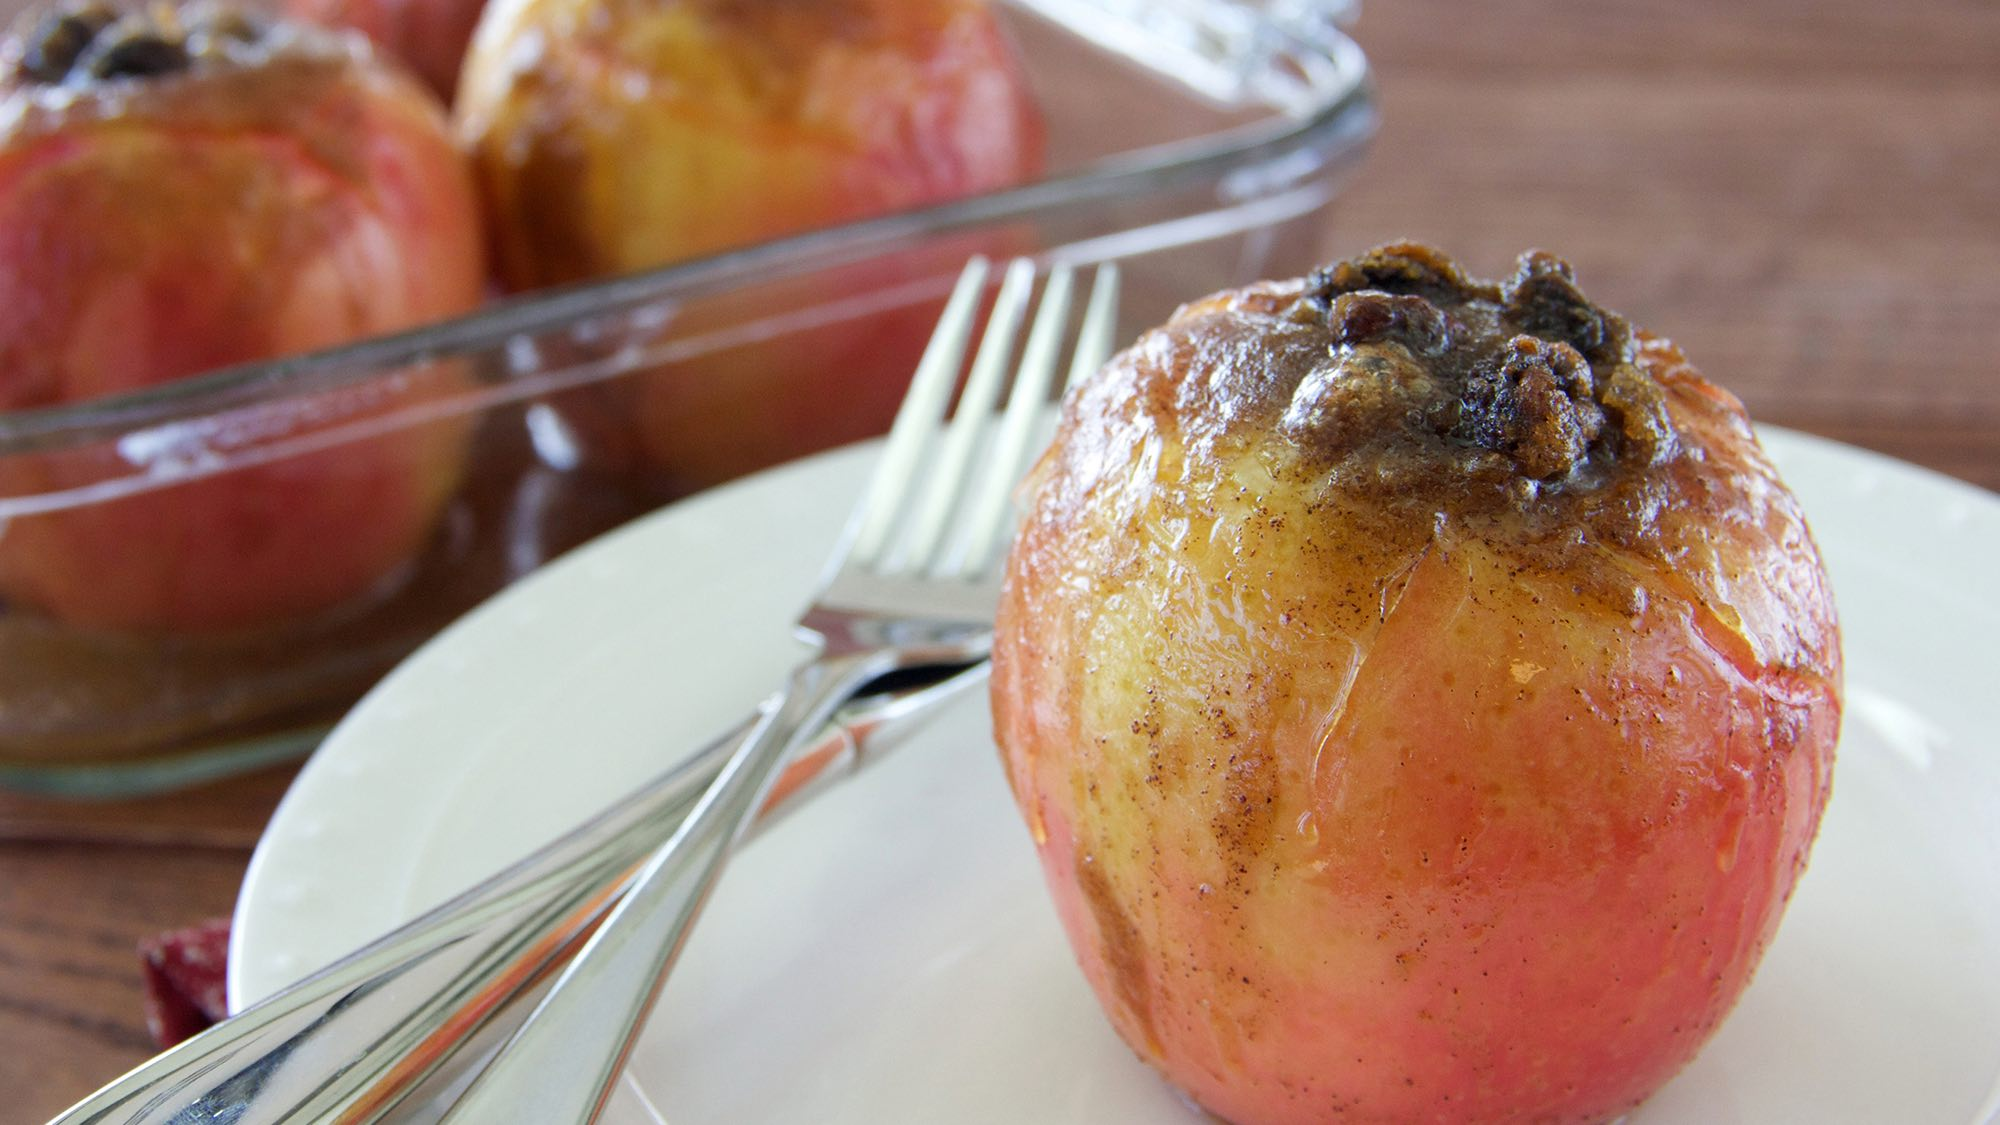 McCormick Baked Apples with Brown Sugar and Raisins